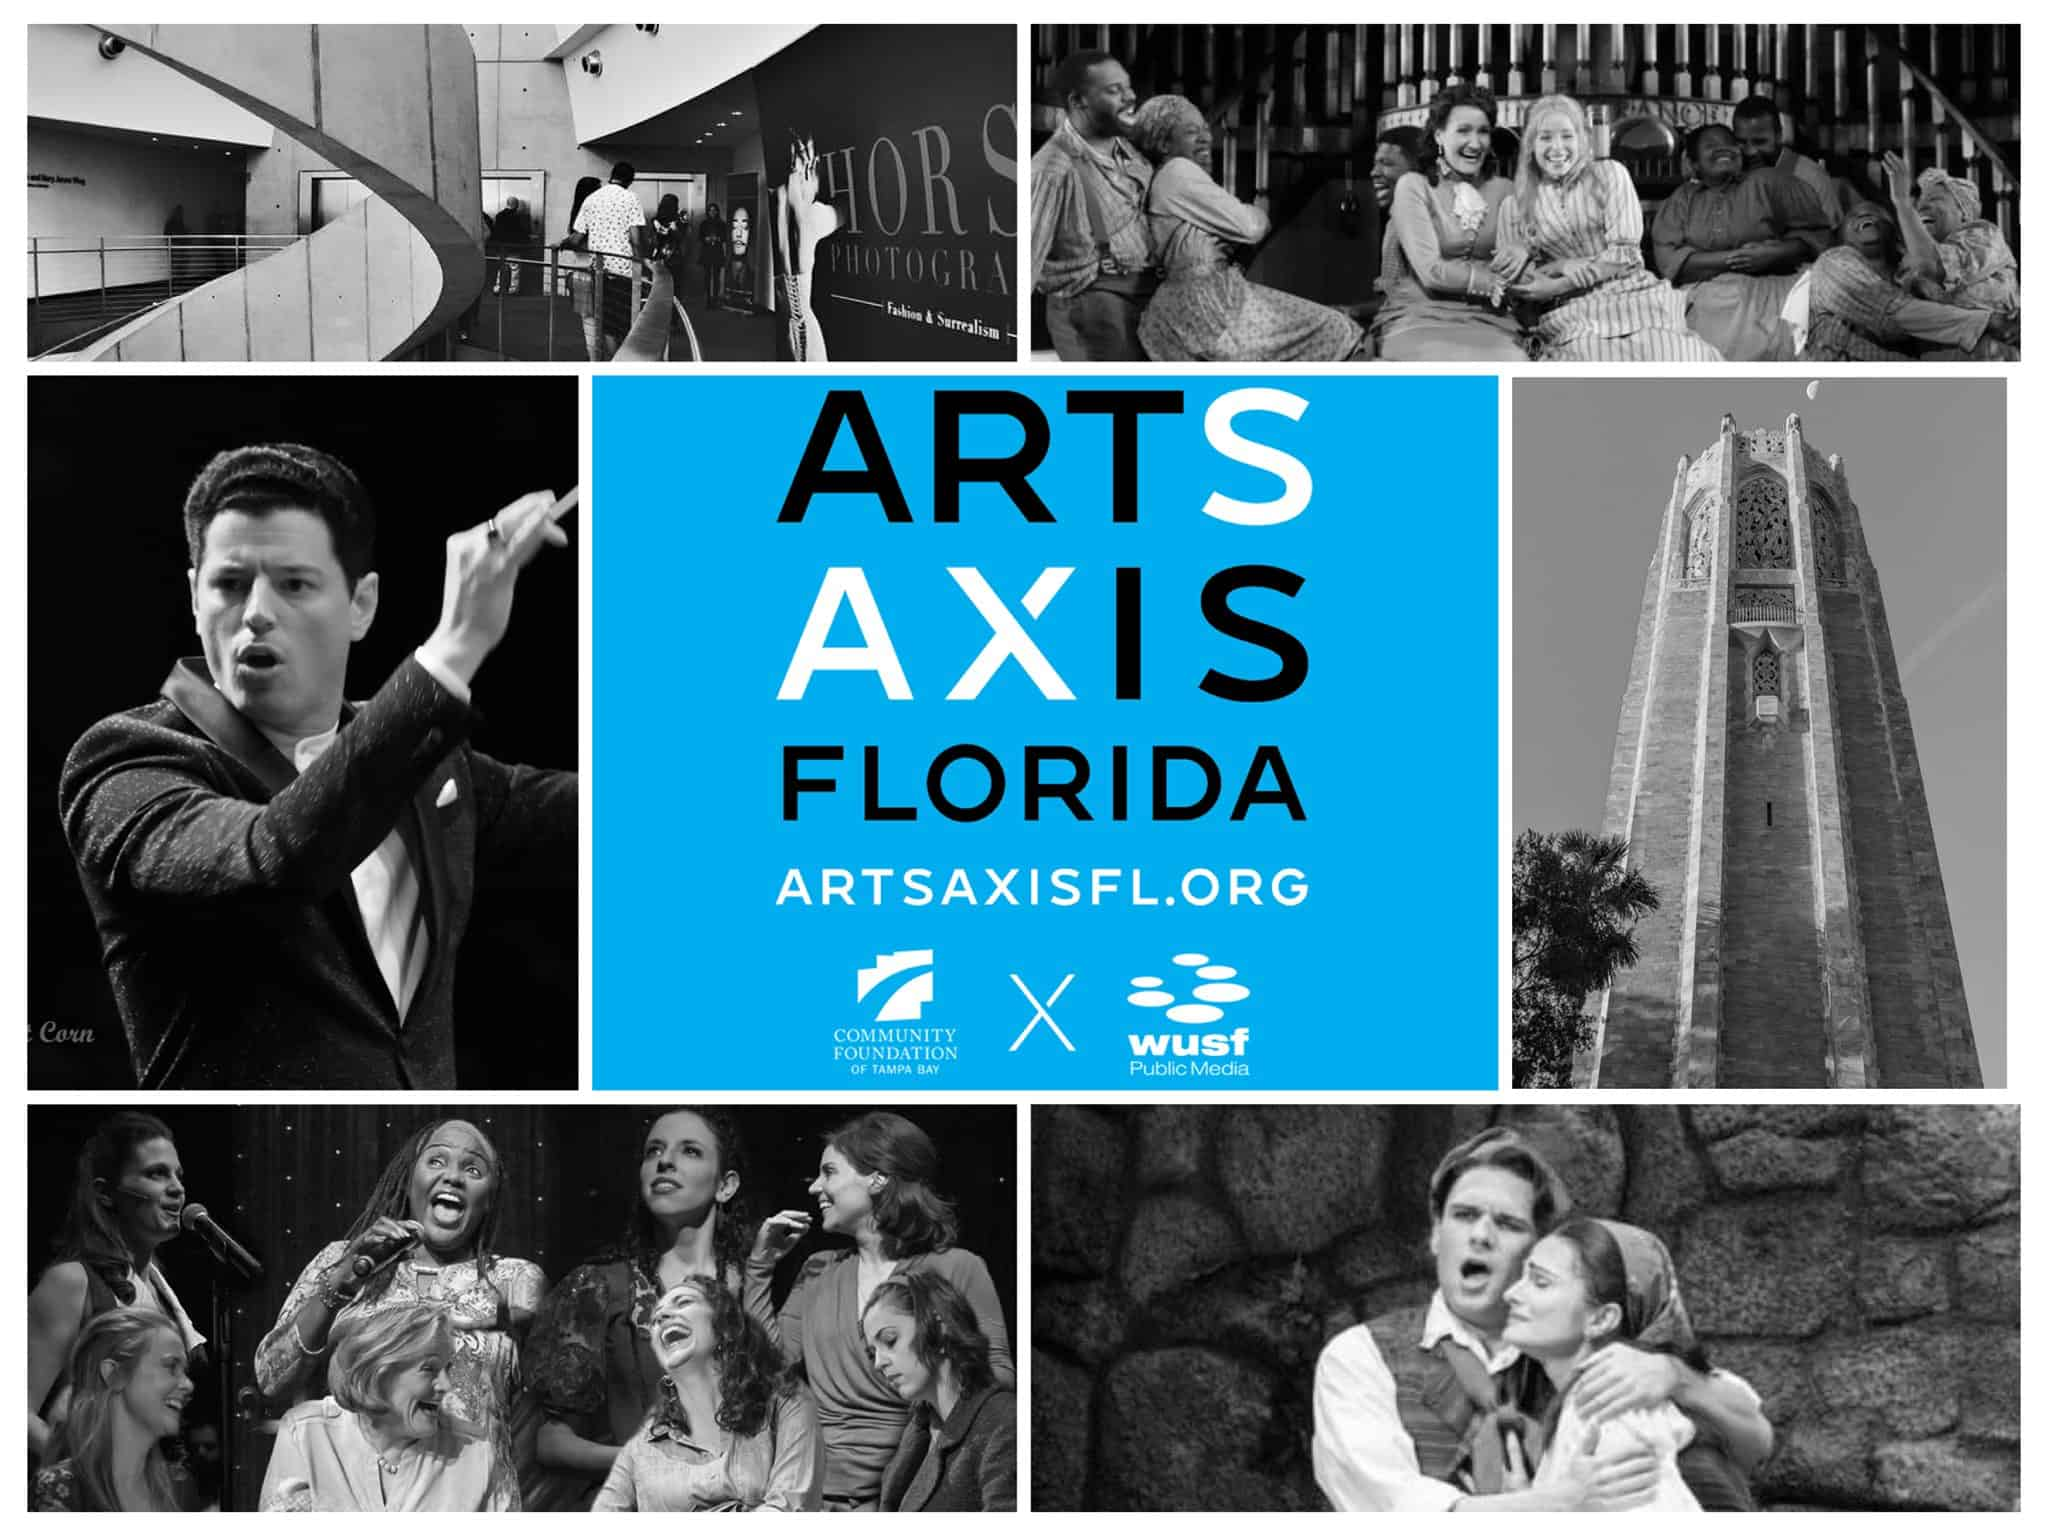 arts axis florida logo and photos